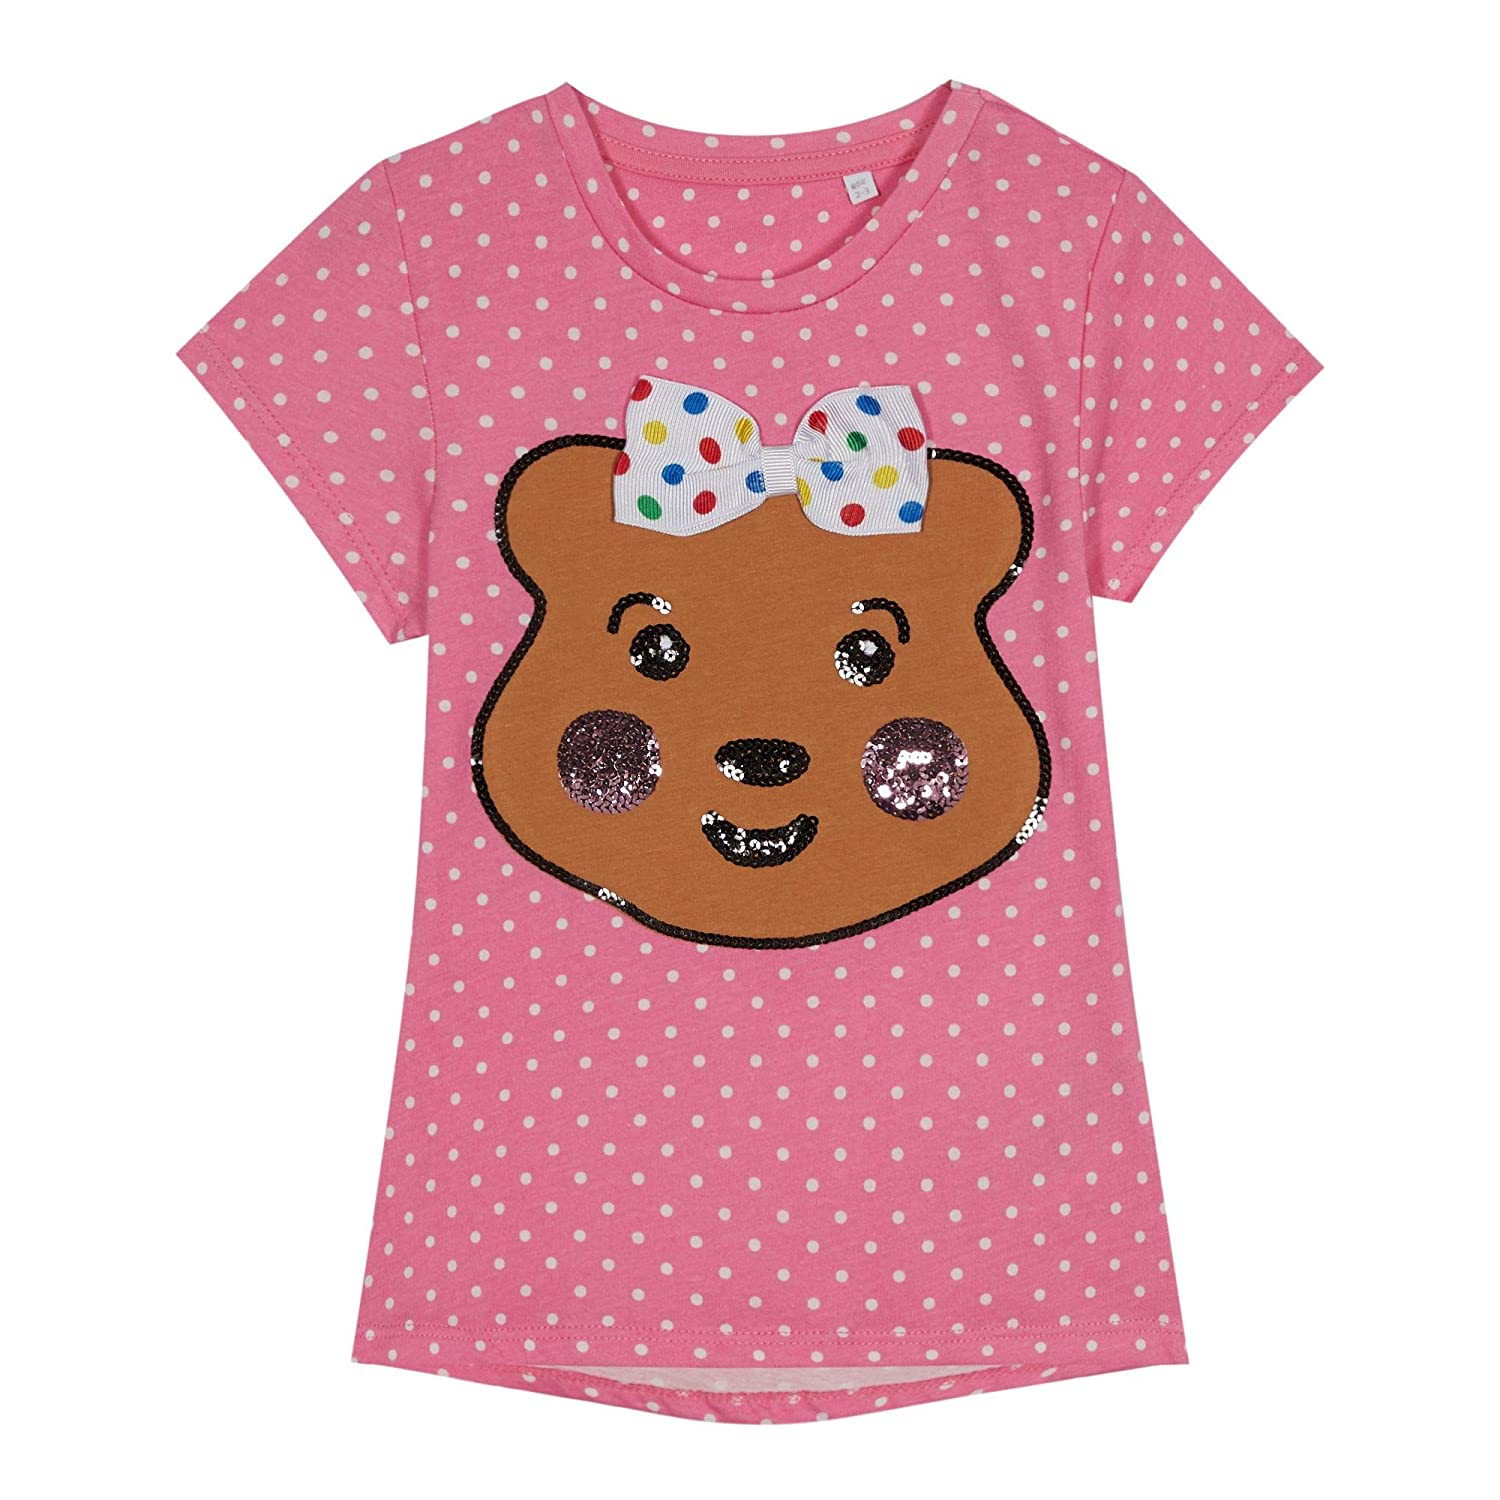 BBC Children In Need Kids Kids' Pink Pudsey Print T-Shirt